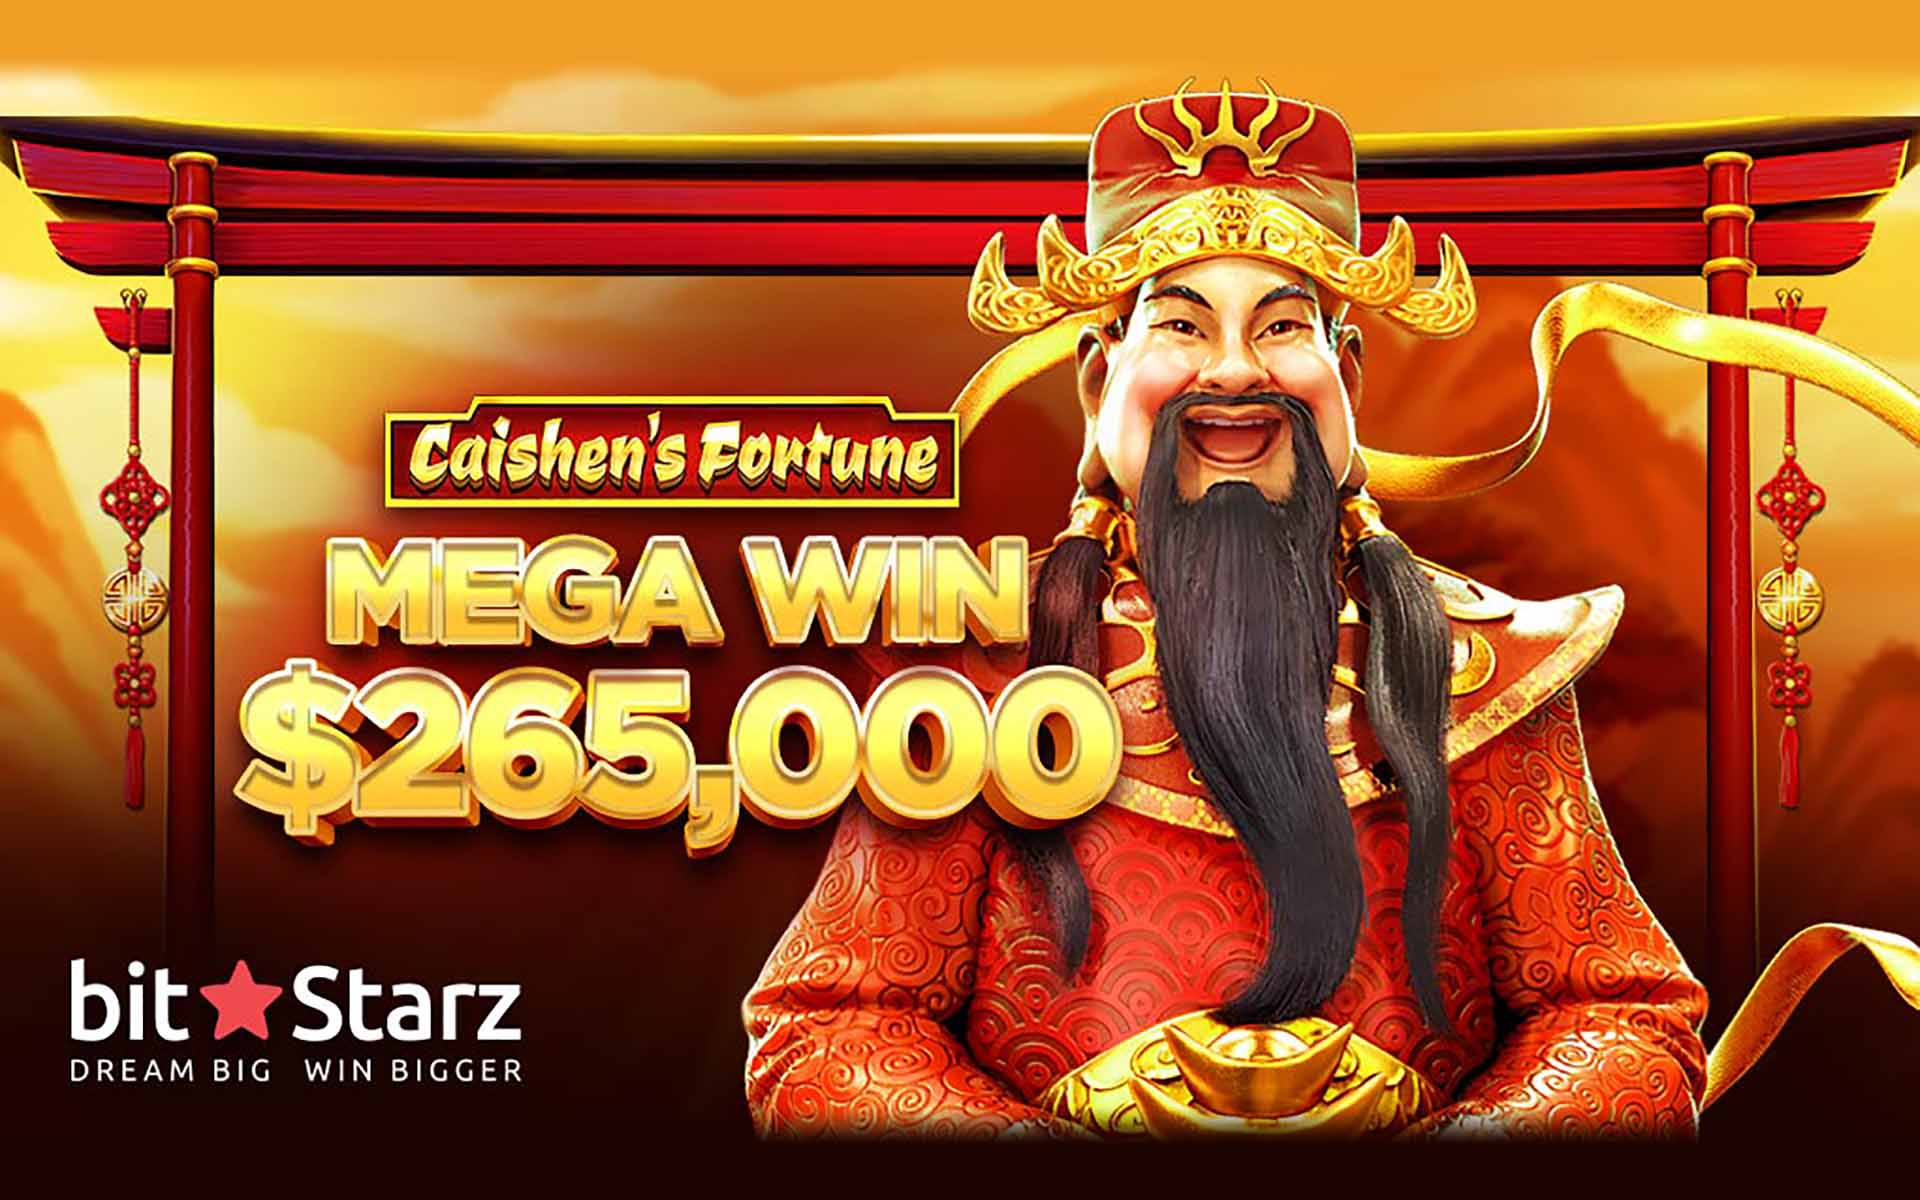 Another Huge Prize Falls at BitStarz, Lucky Player Scoops $265,000 Win!